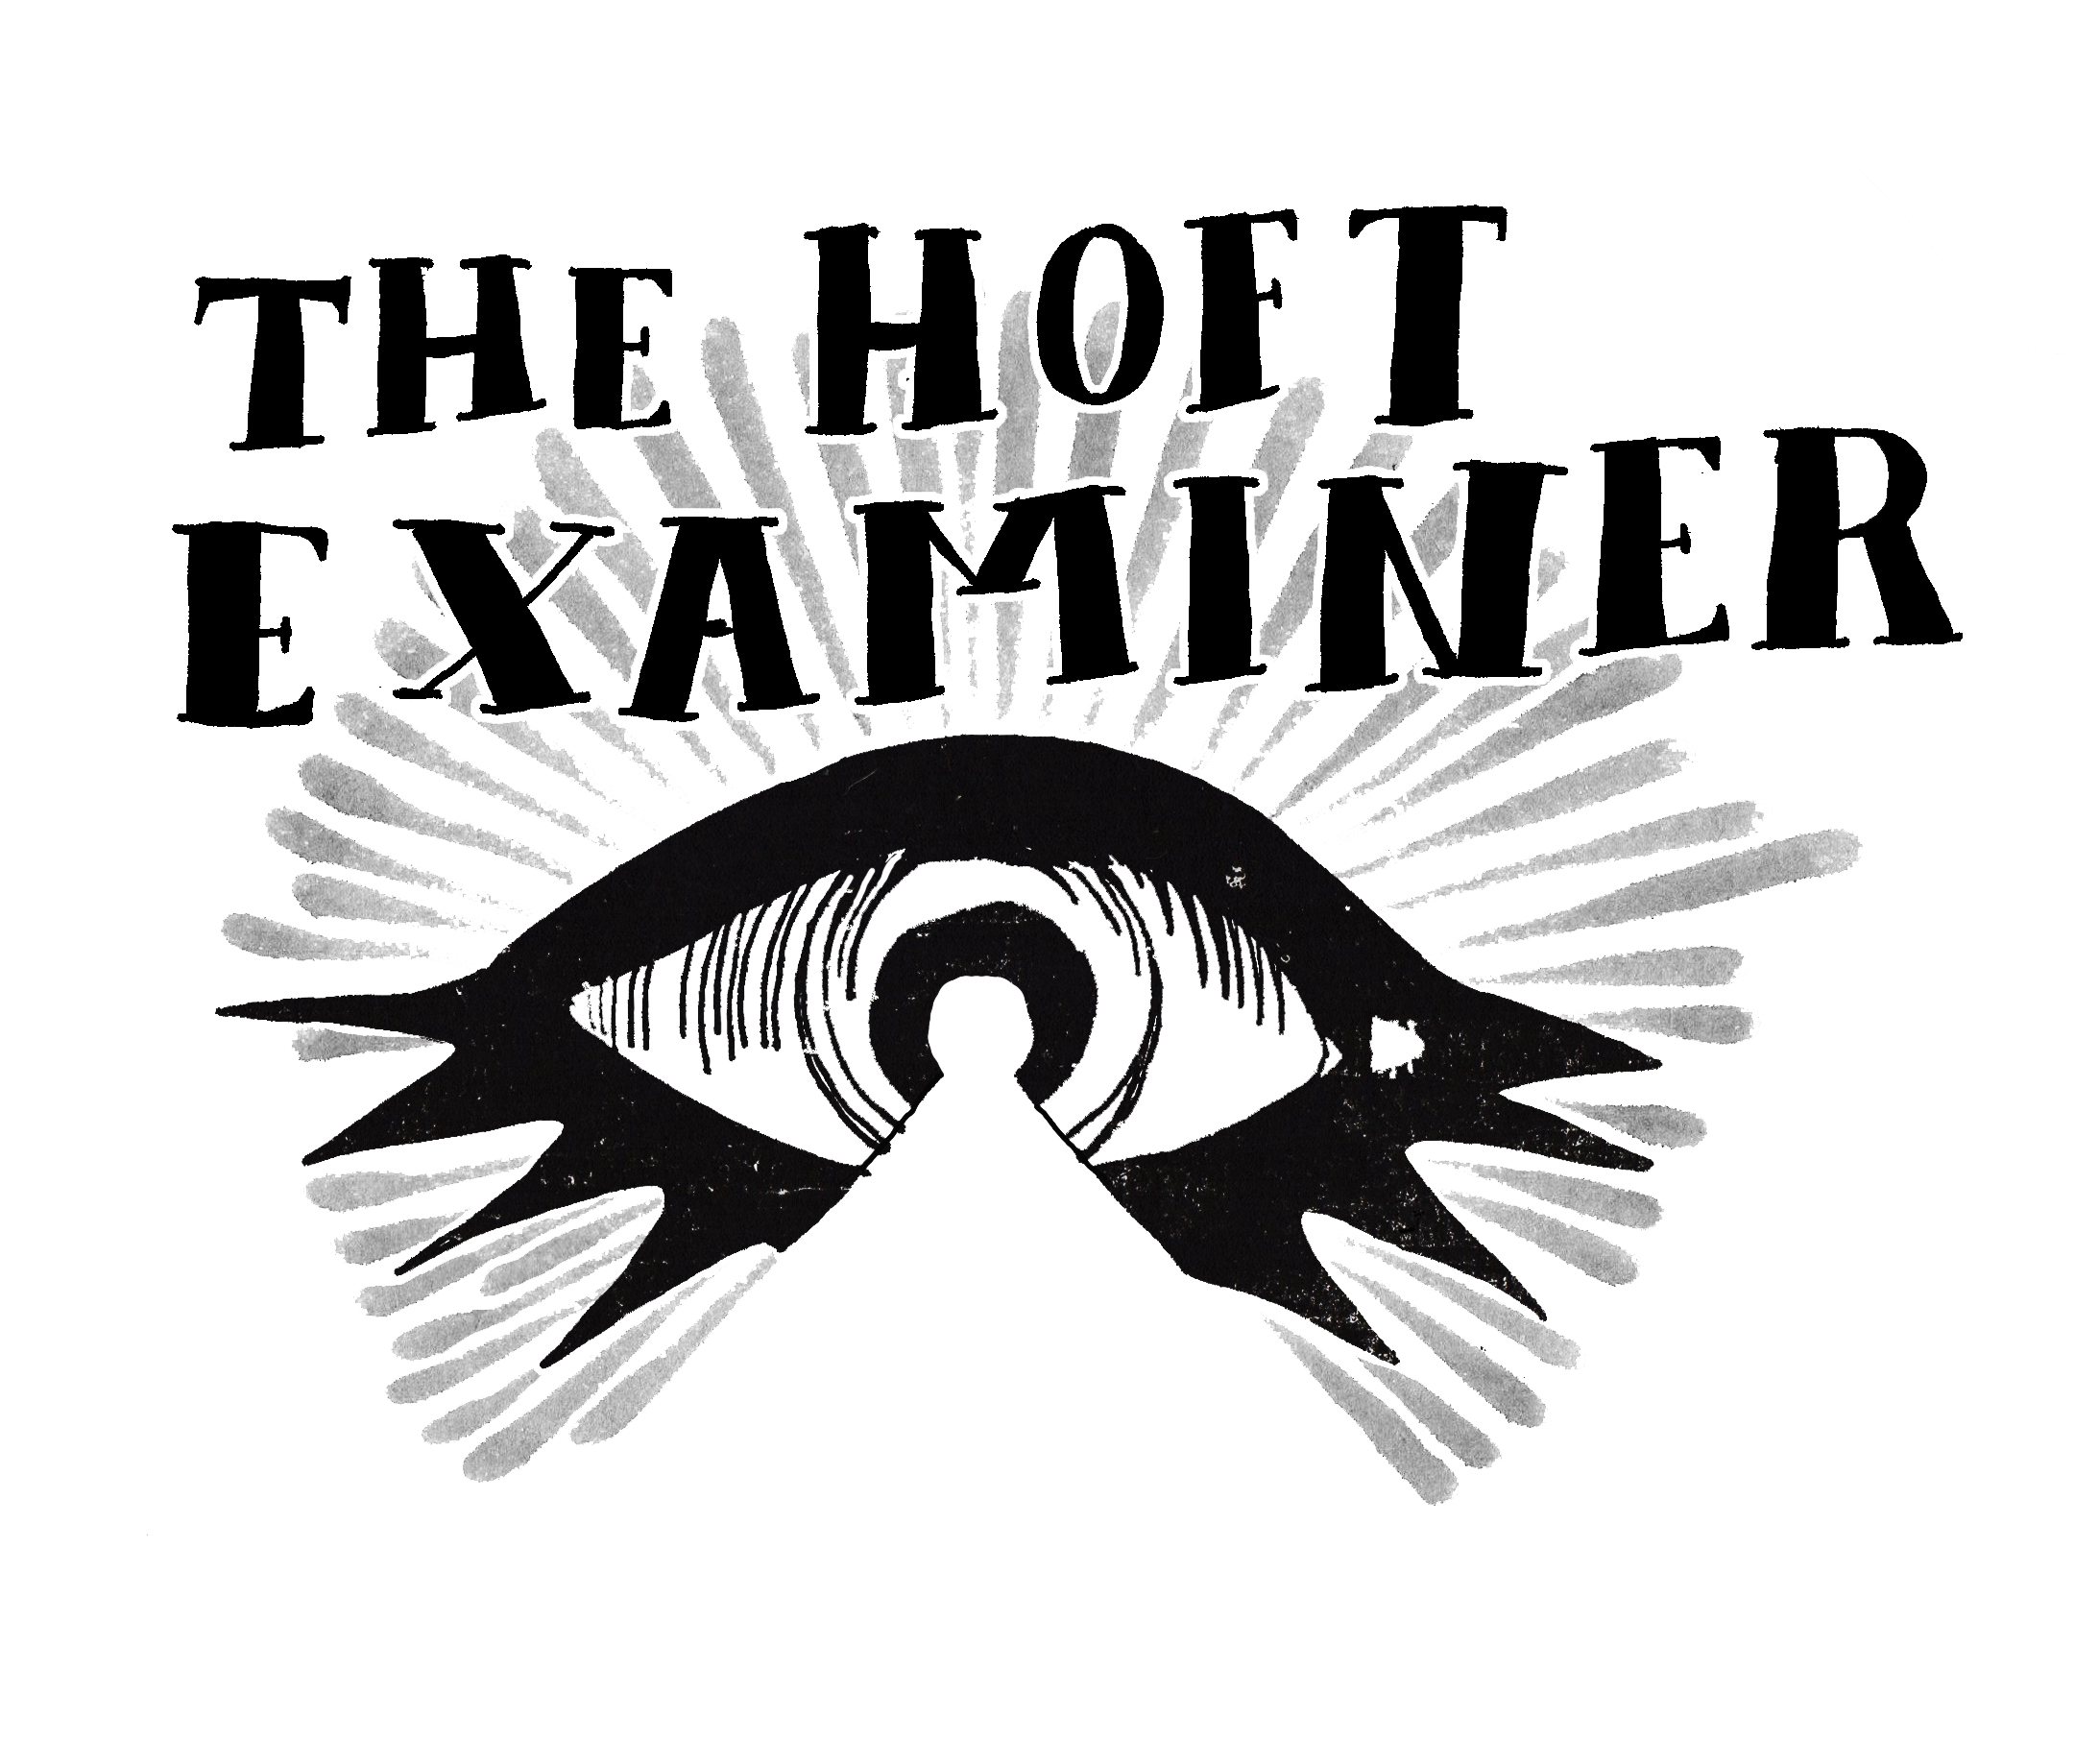 HoFT Examiner  Young journalist and writers workshops  for our children's online 'News' Playper